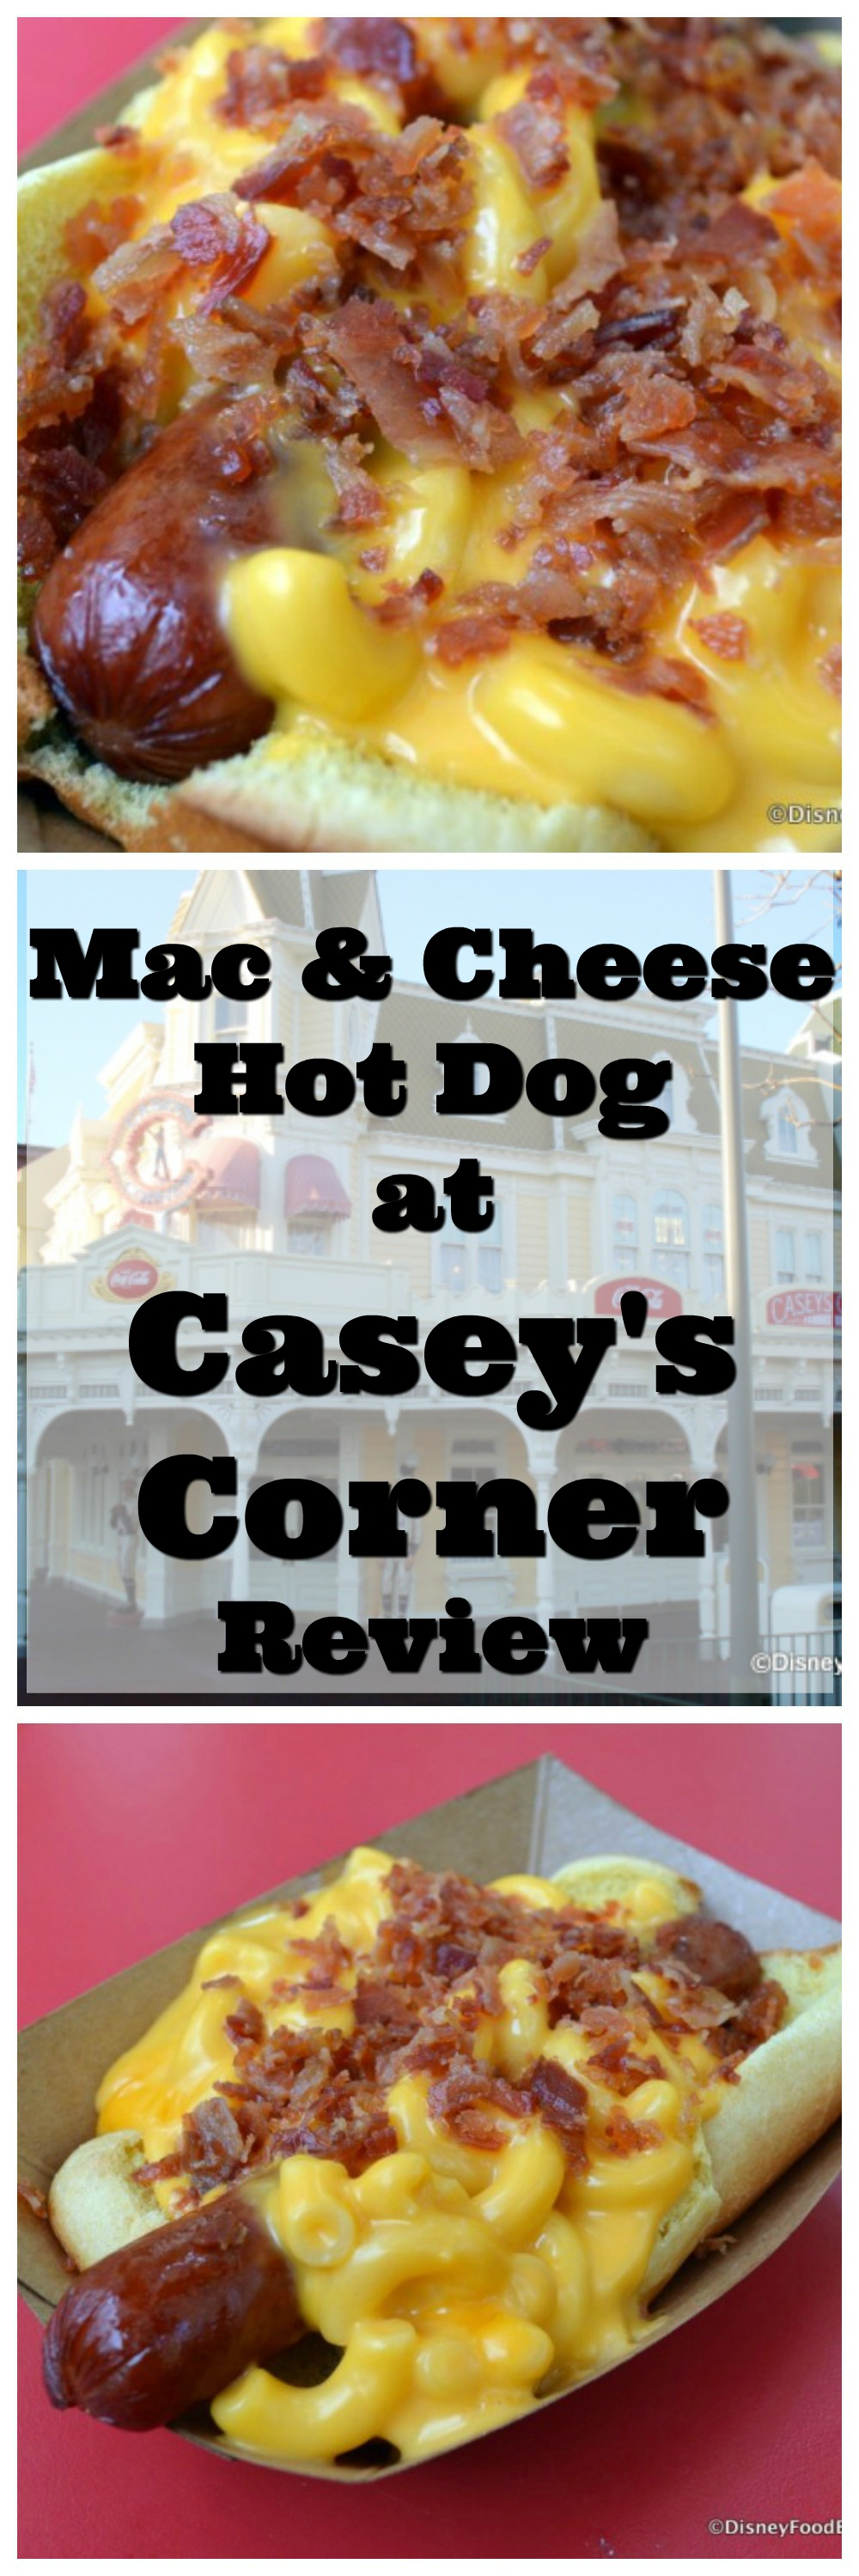 Image Result For Casey S Corner Mac And Cheese Dog